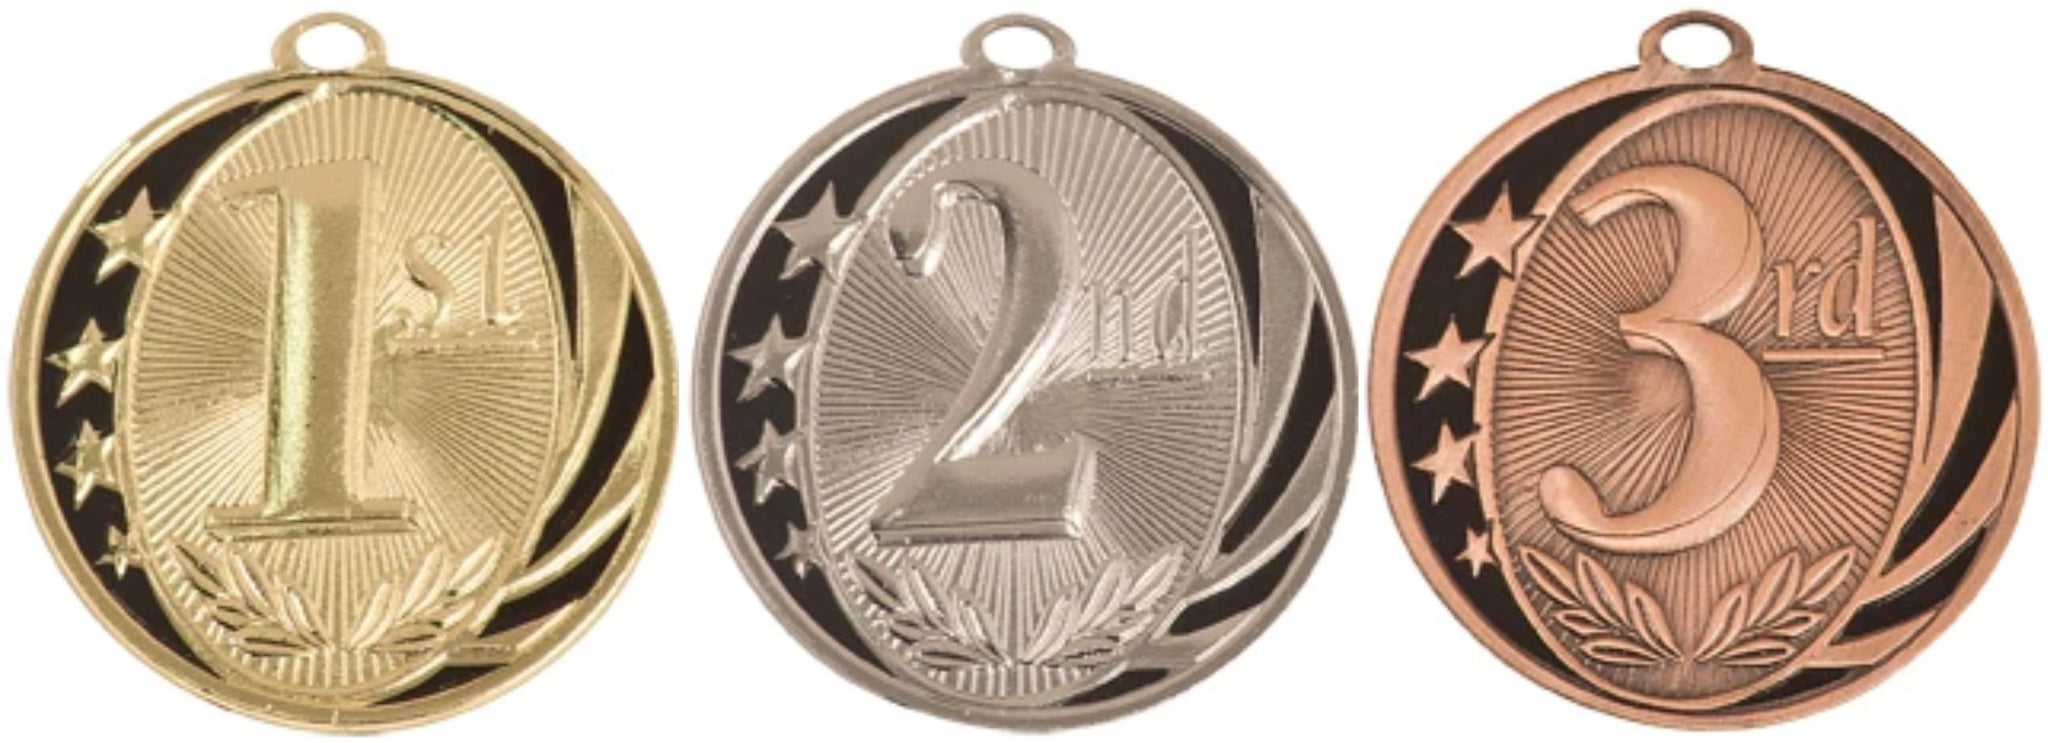 "2"" gold, silver, and bronze medals with first, second and third place design on the front of each"